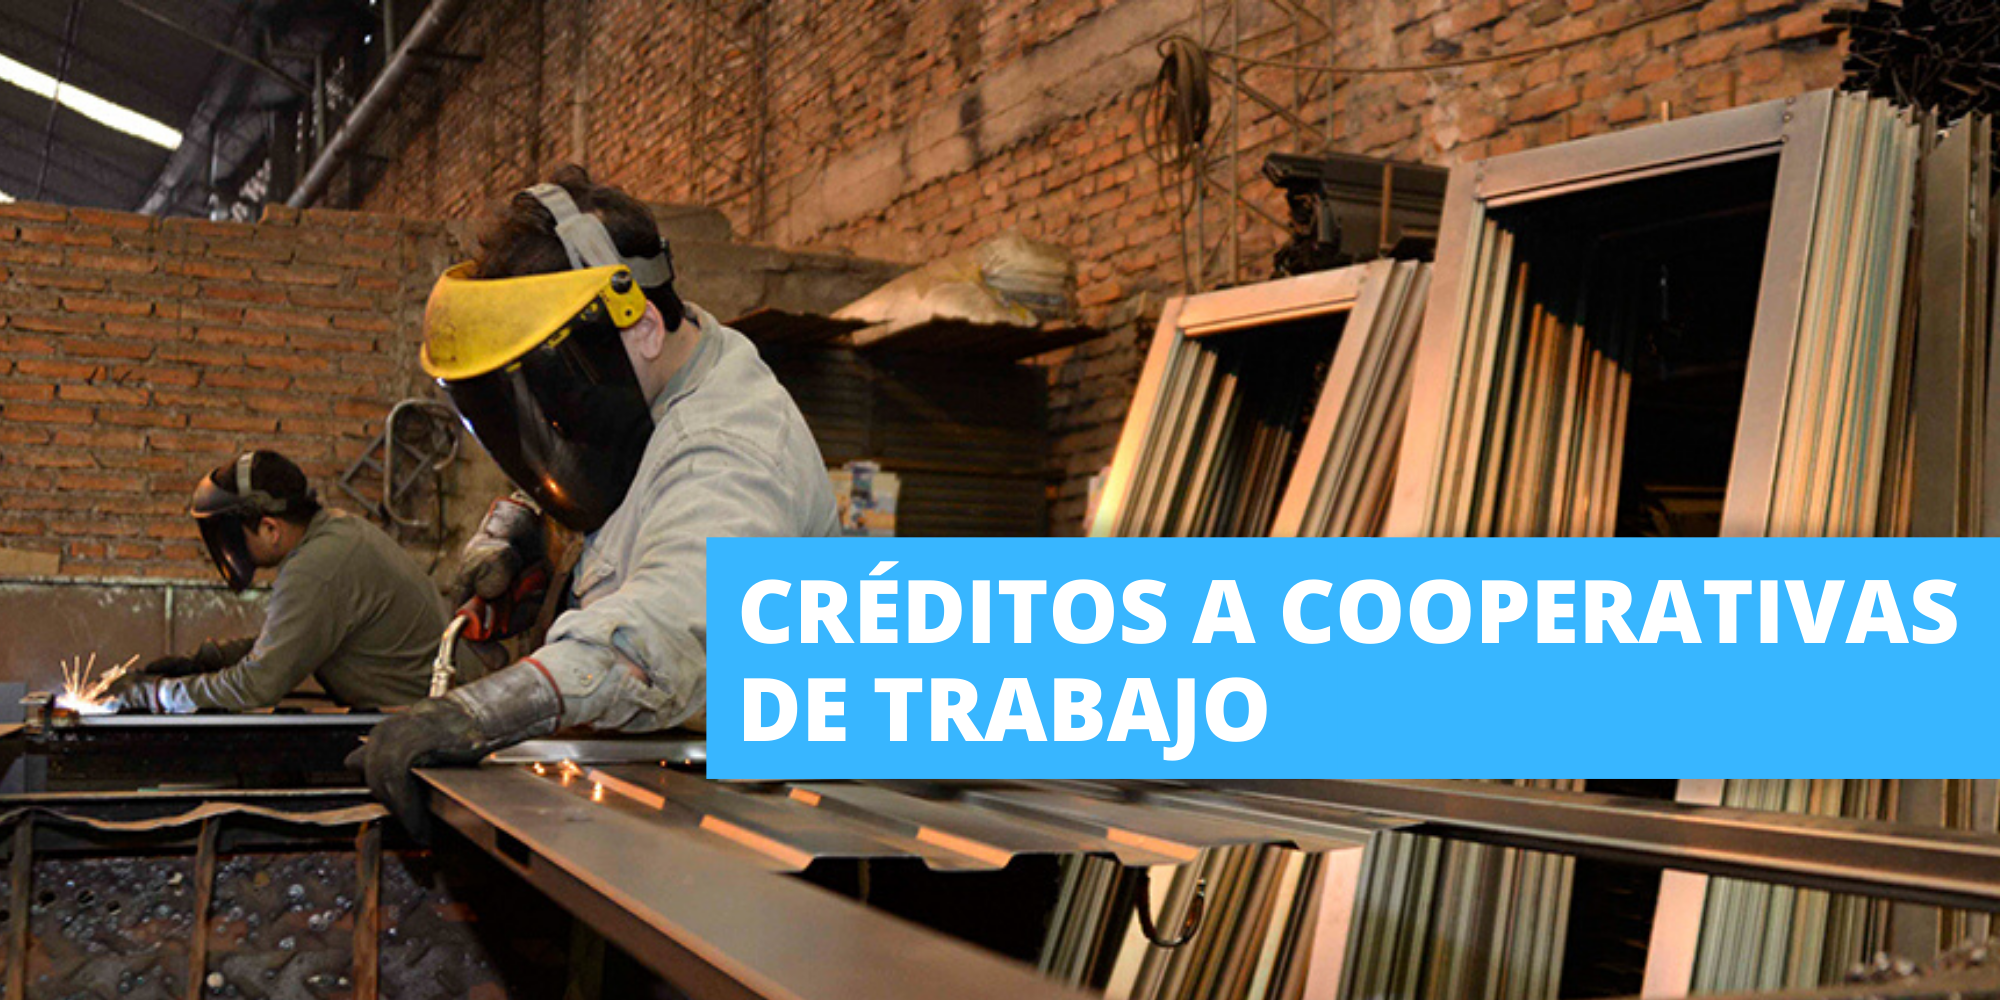 cred-coop-trabajo